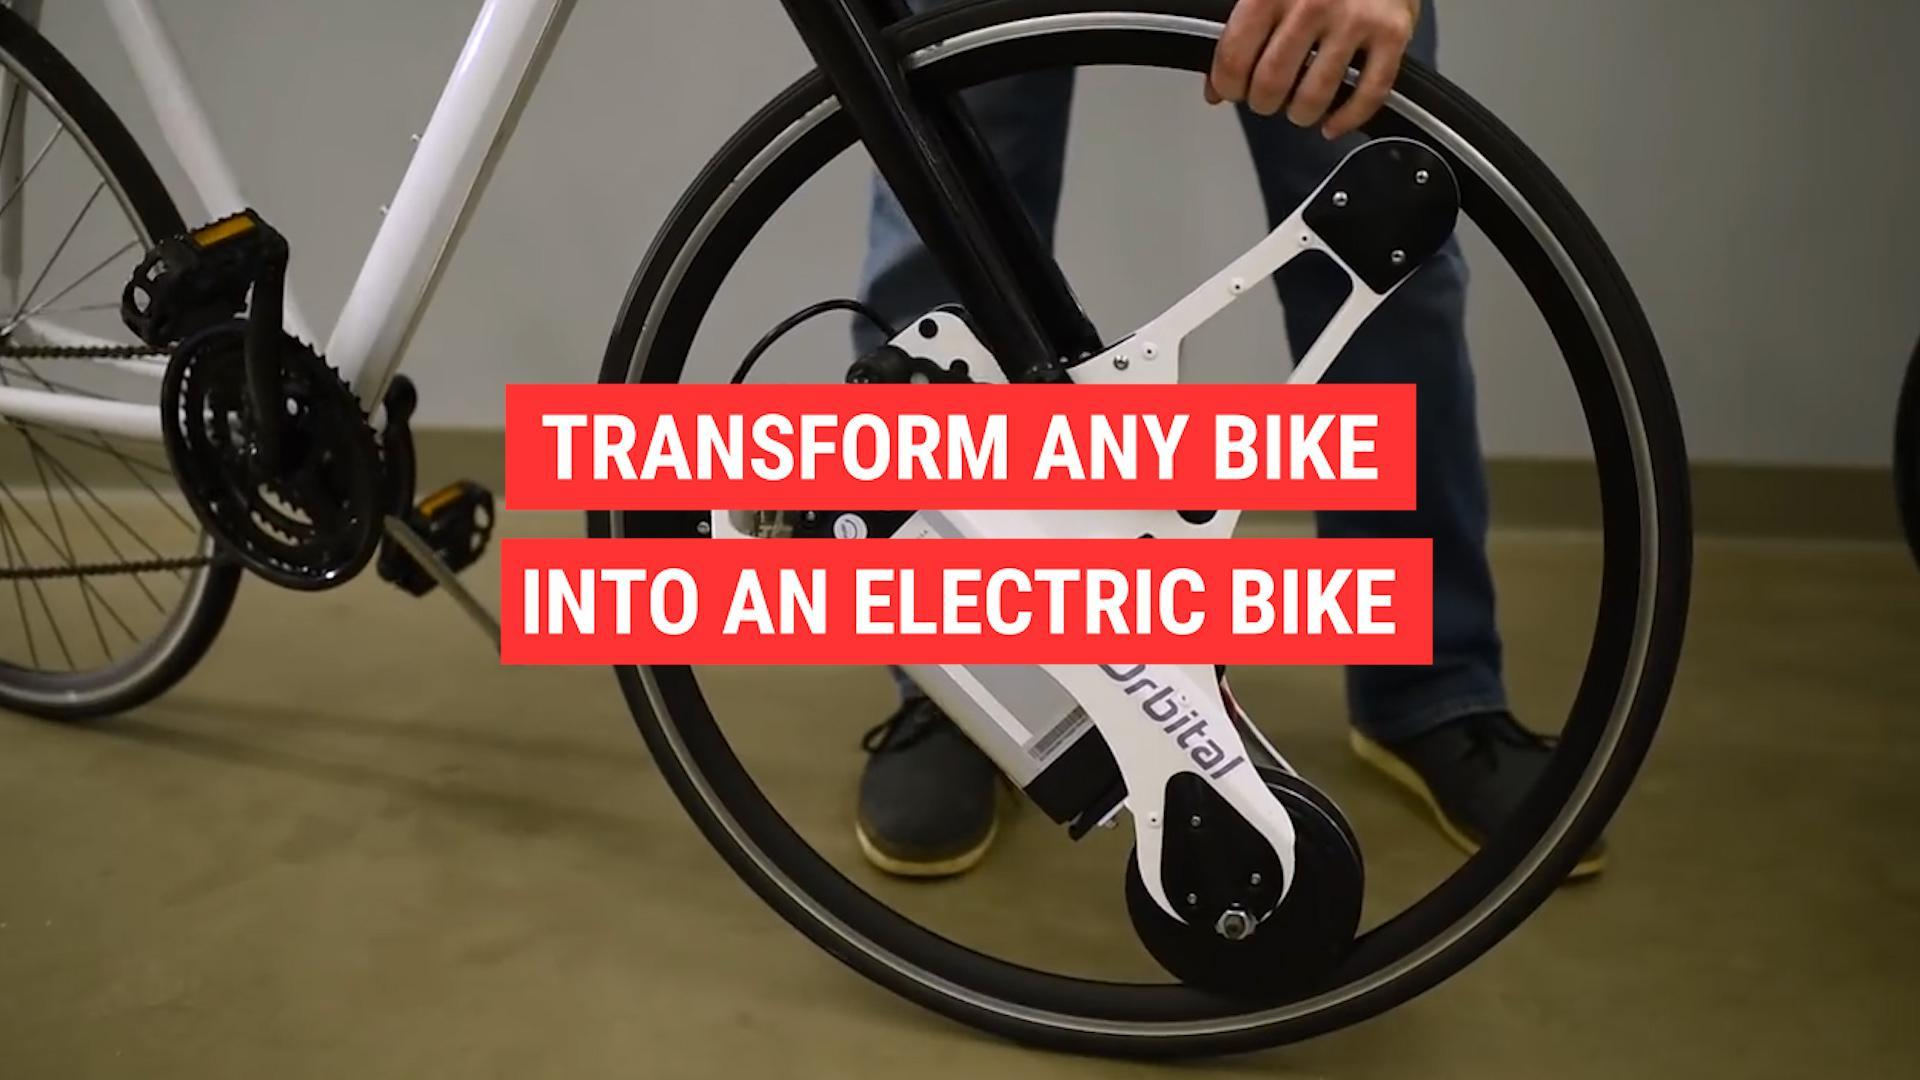 Transform any bike into an electric bike